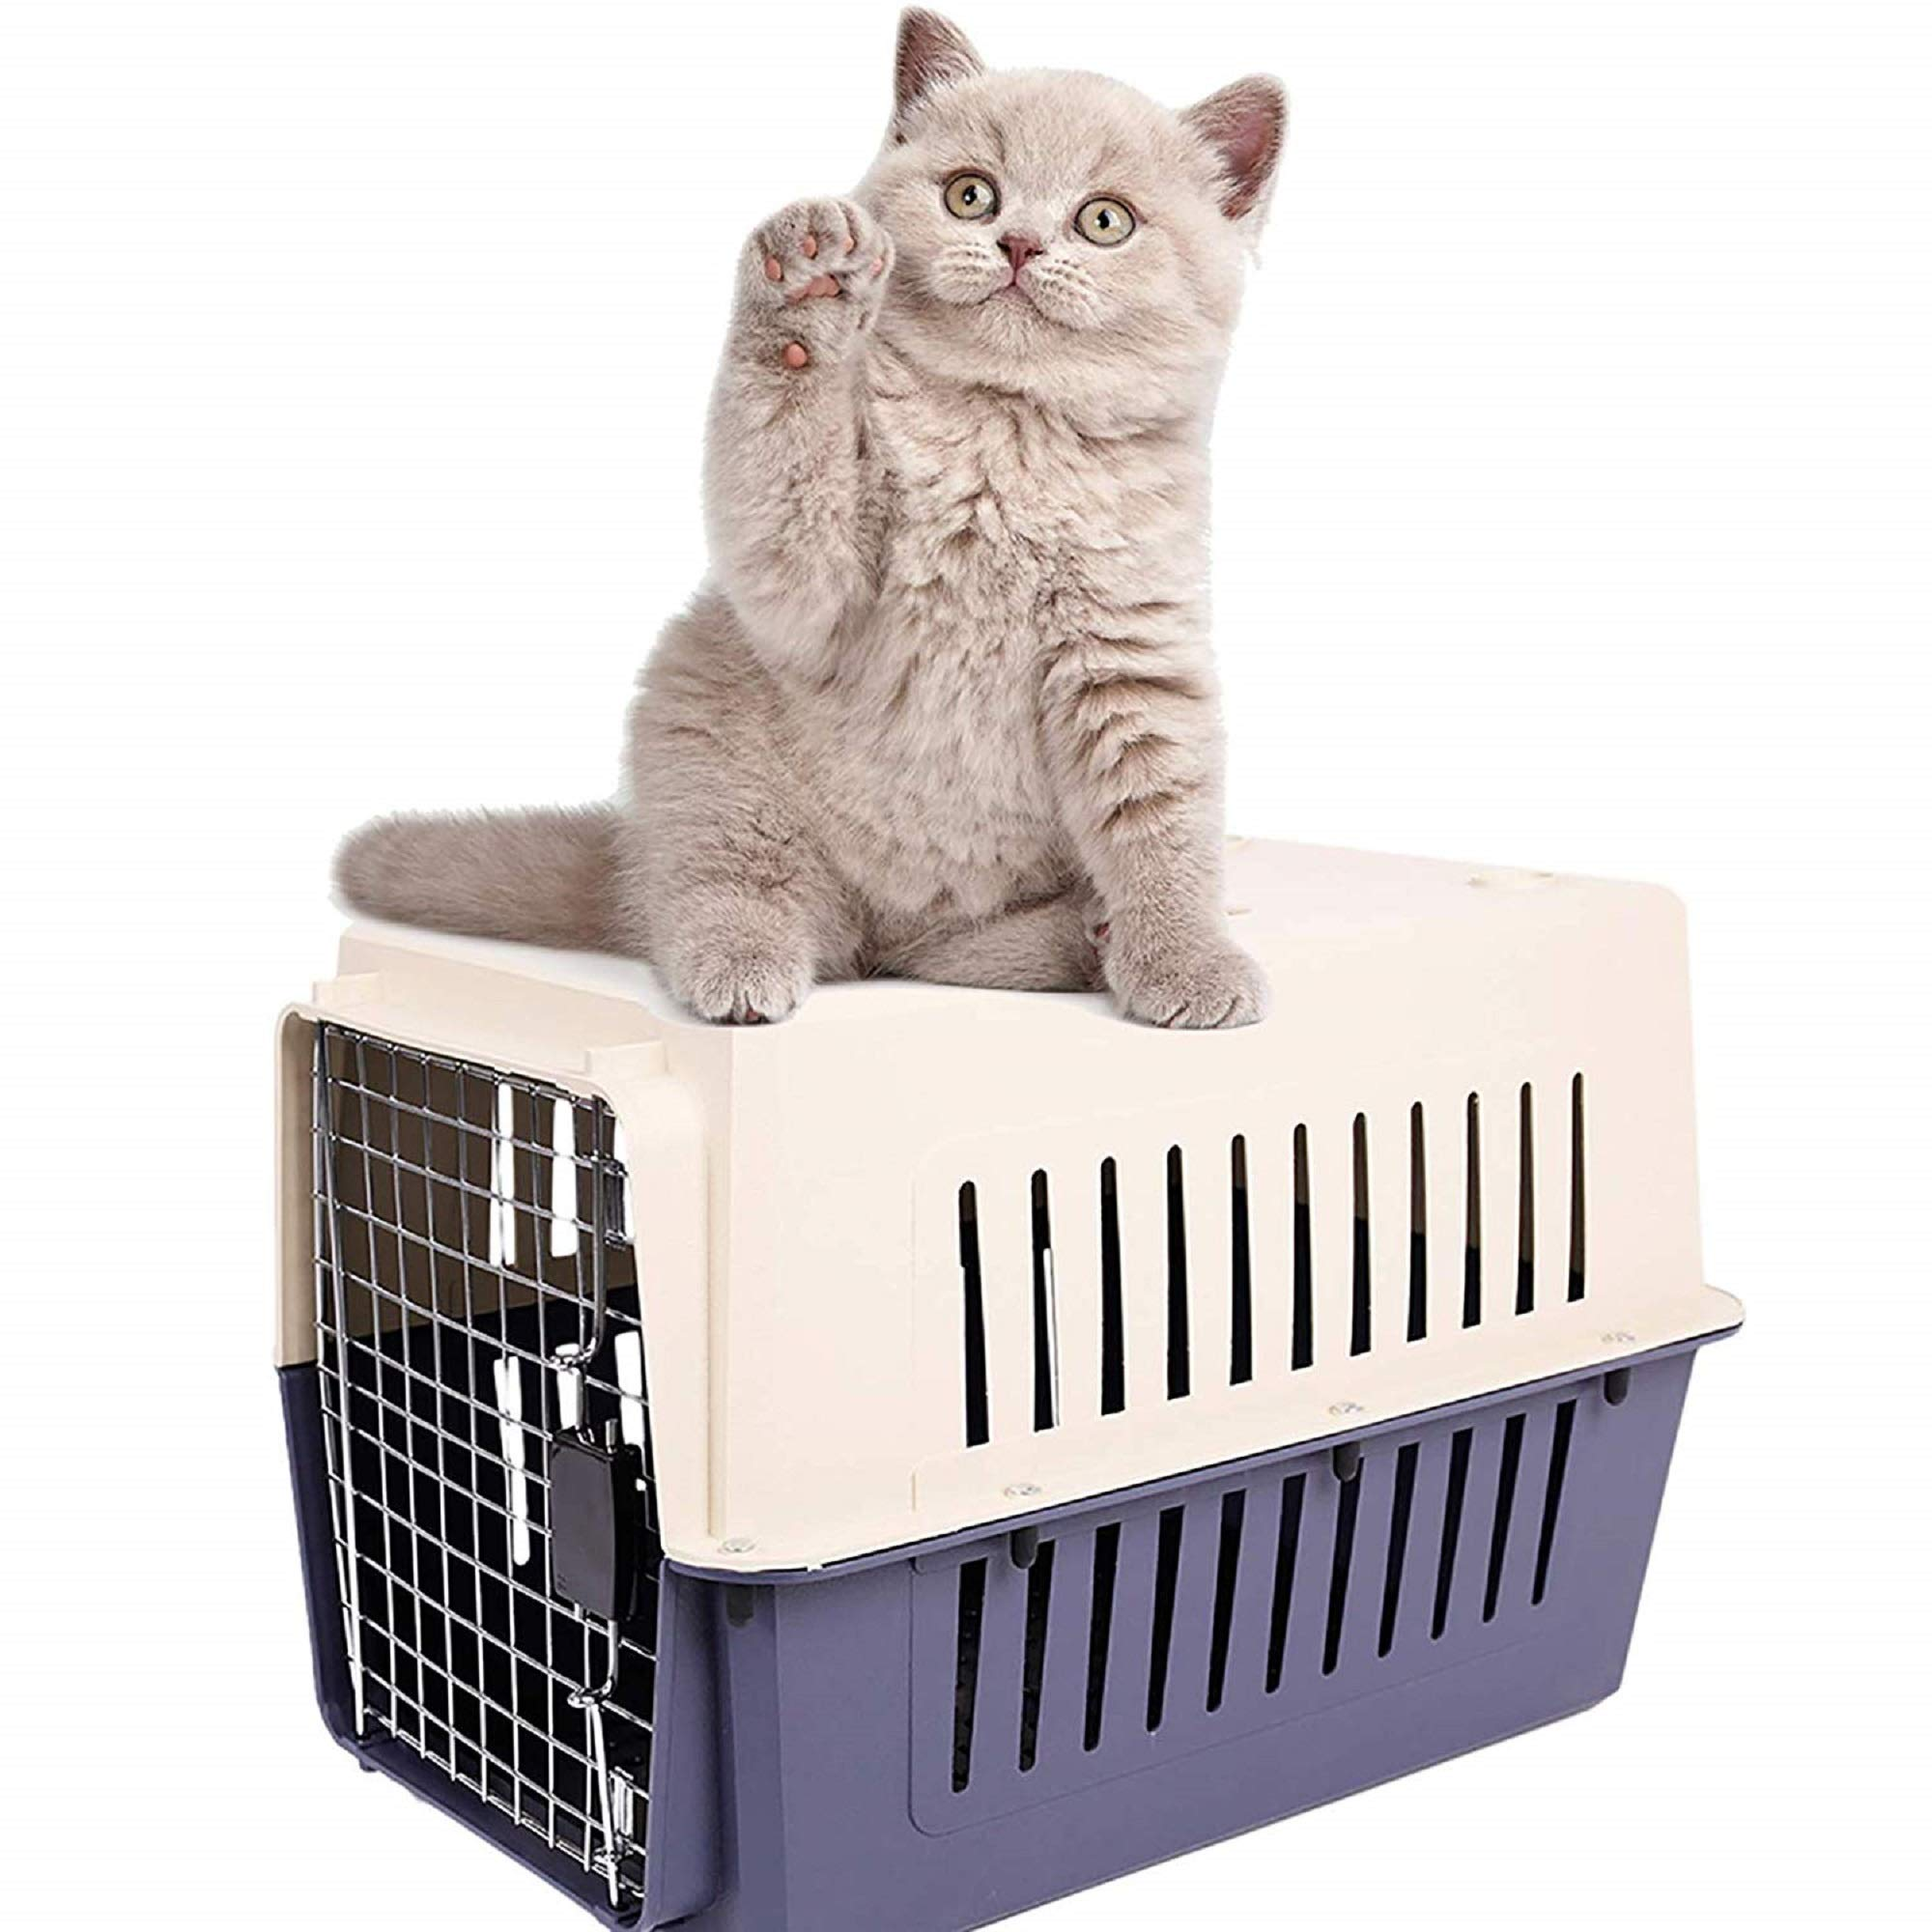 Livebest Portable Plastic Hard-Sided Pet Carrier Crate Outdoor Kennel Car Travel Box for Small Animals (M, darkblue) by Livebest